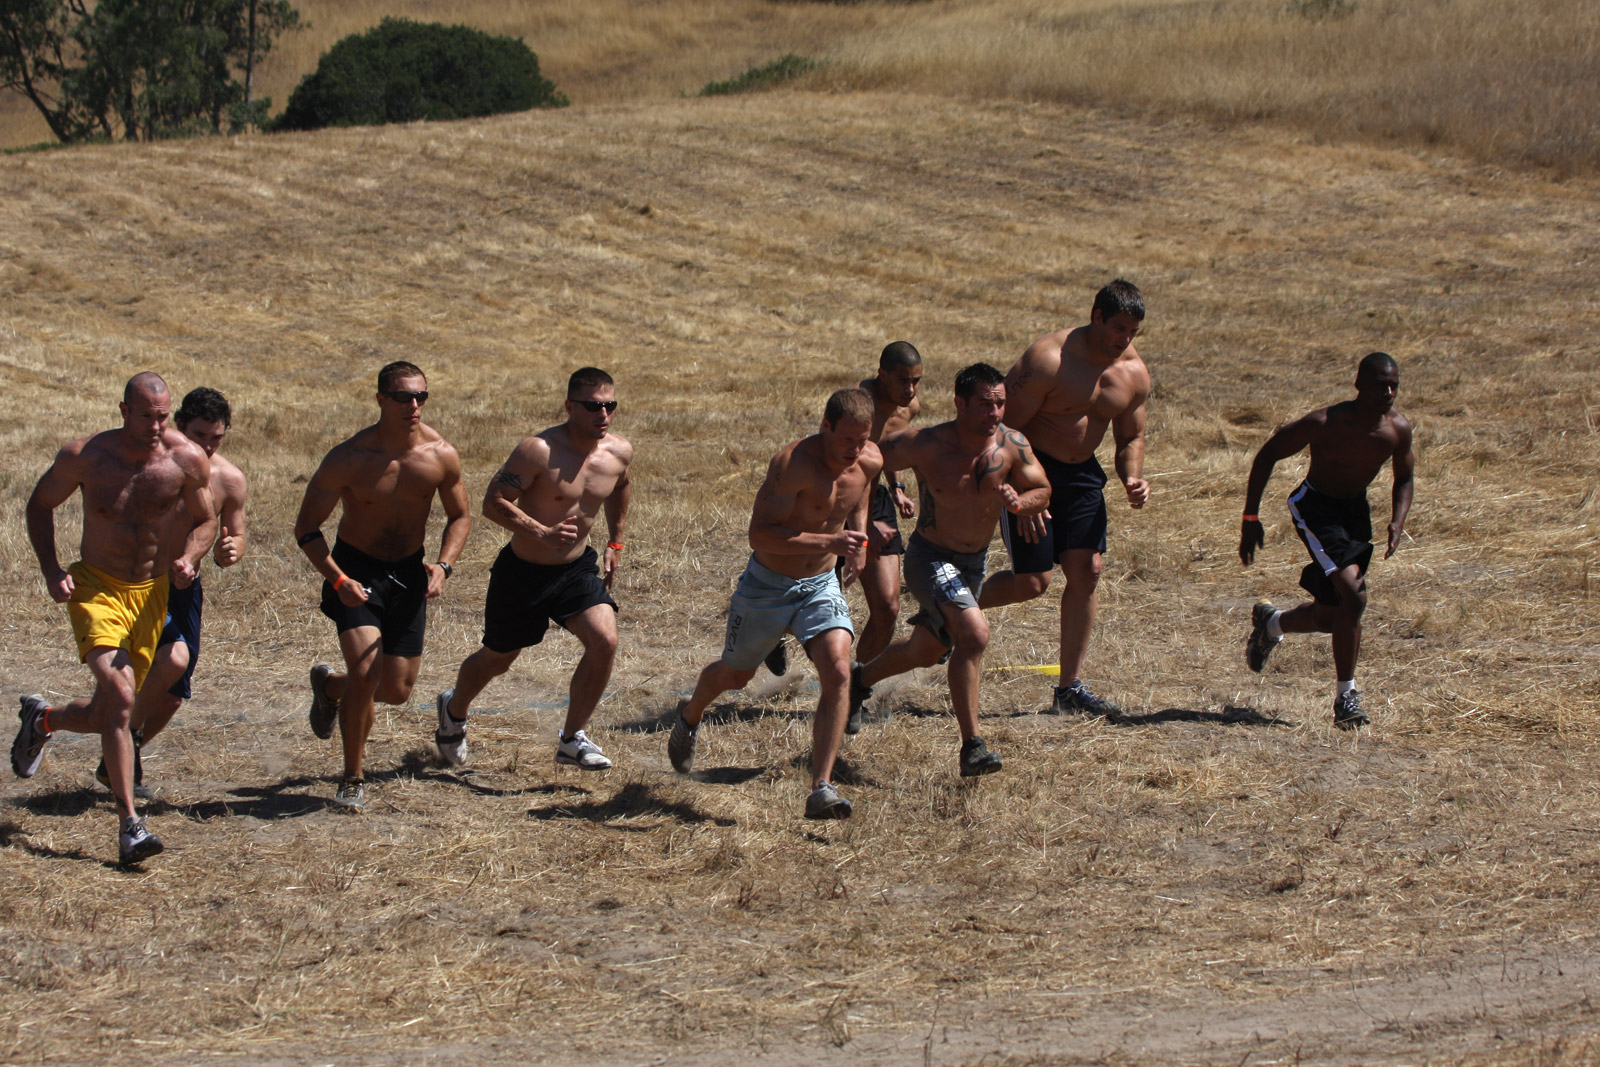 http://games2009.crossfit.com/run.jpg